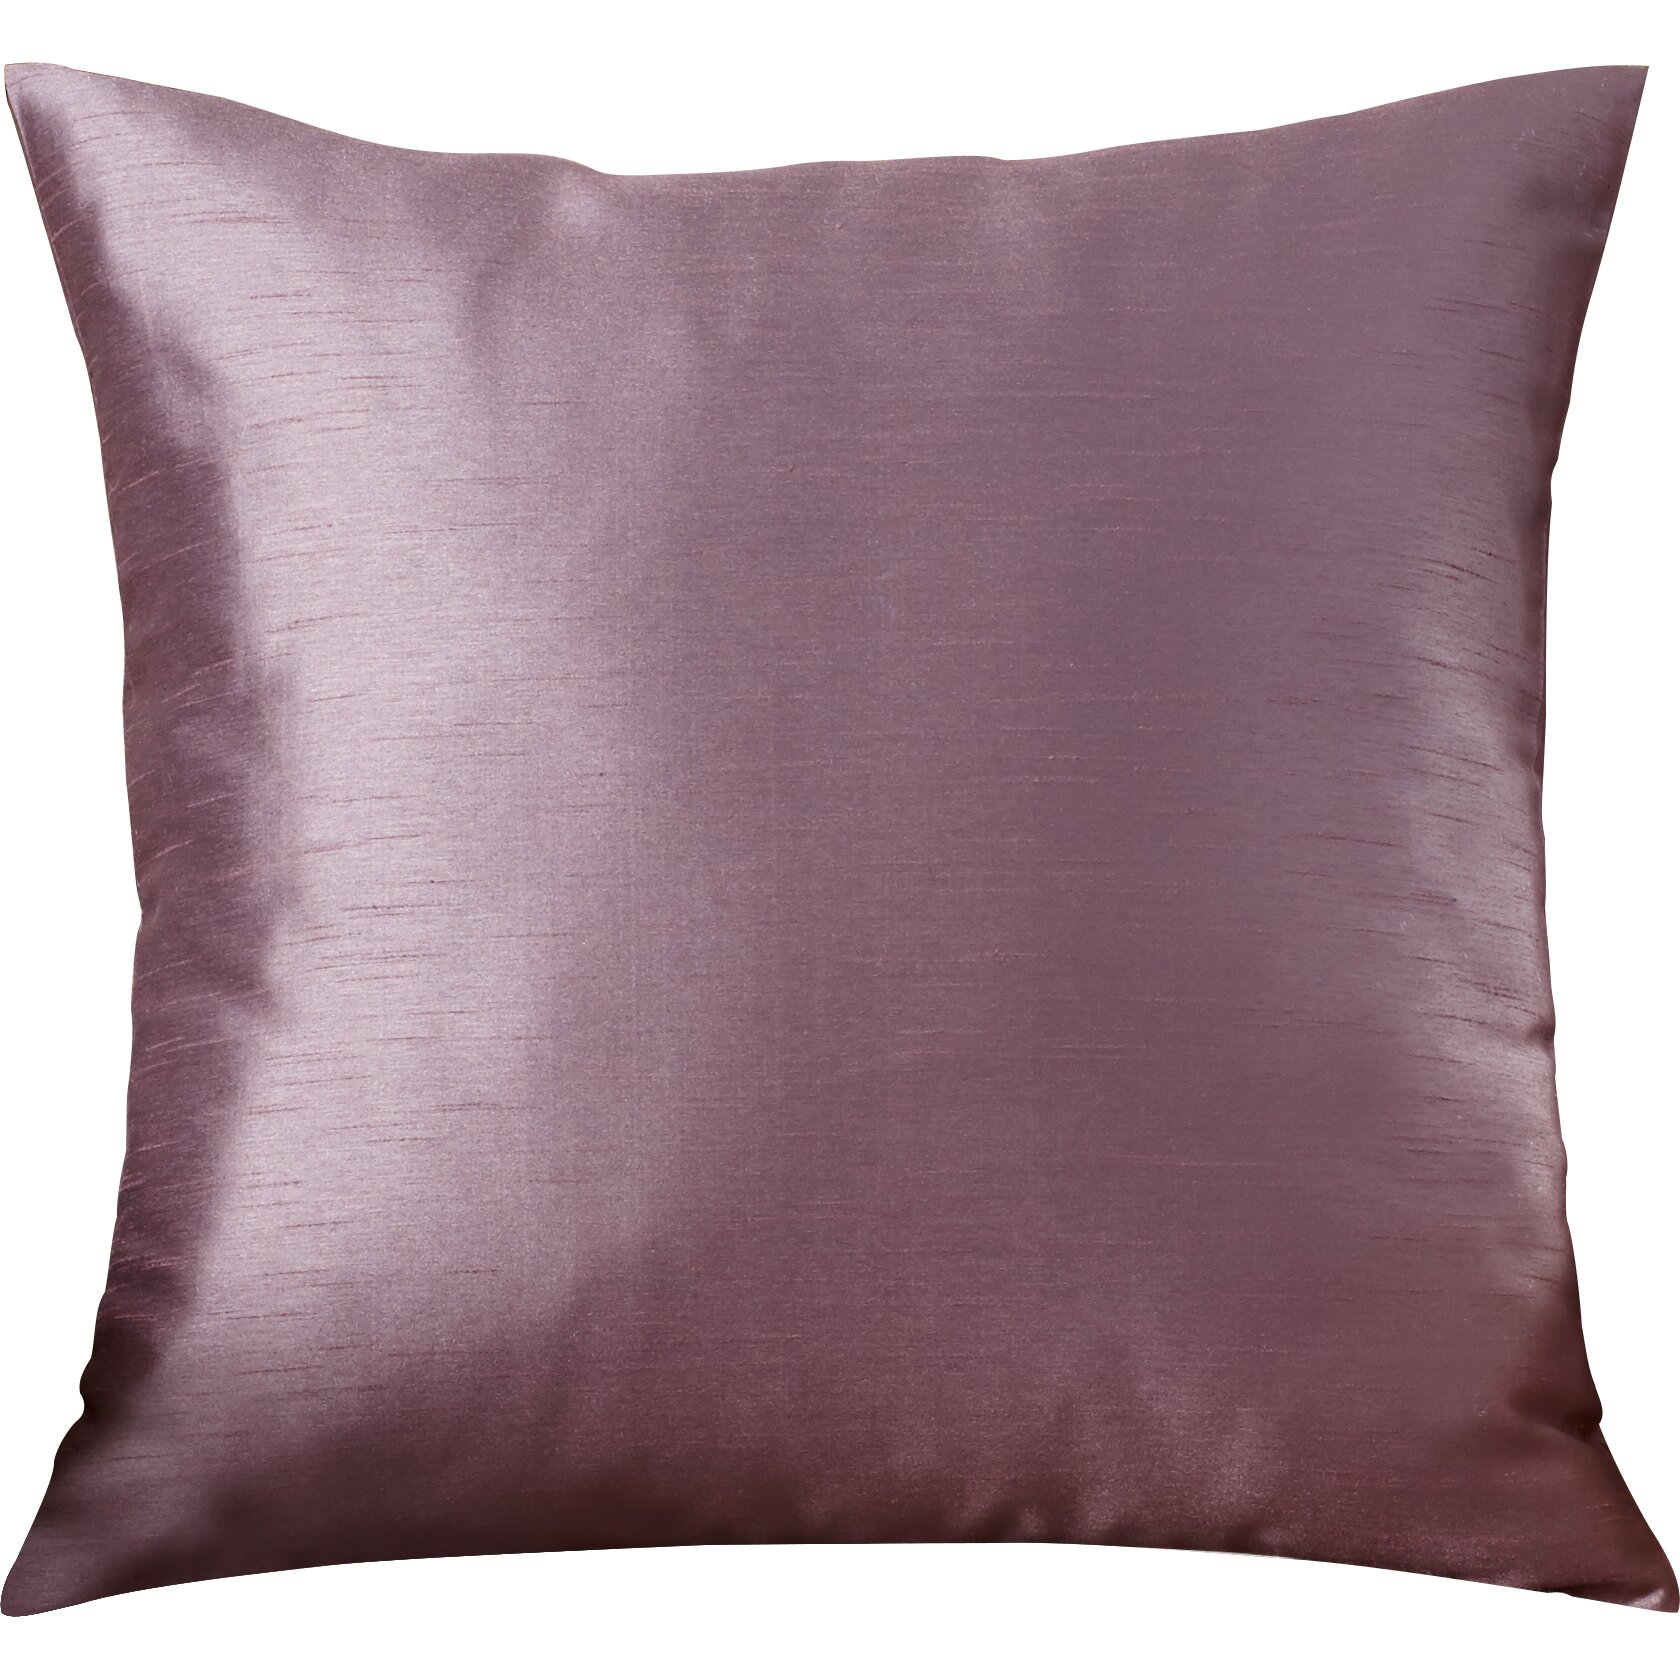 Astoria Grand Appley Solid Luxe Synthetic Throw Pillow & Reviews Wayfair.ca